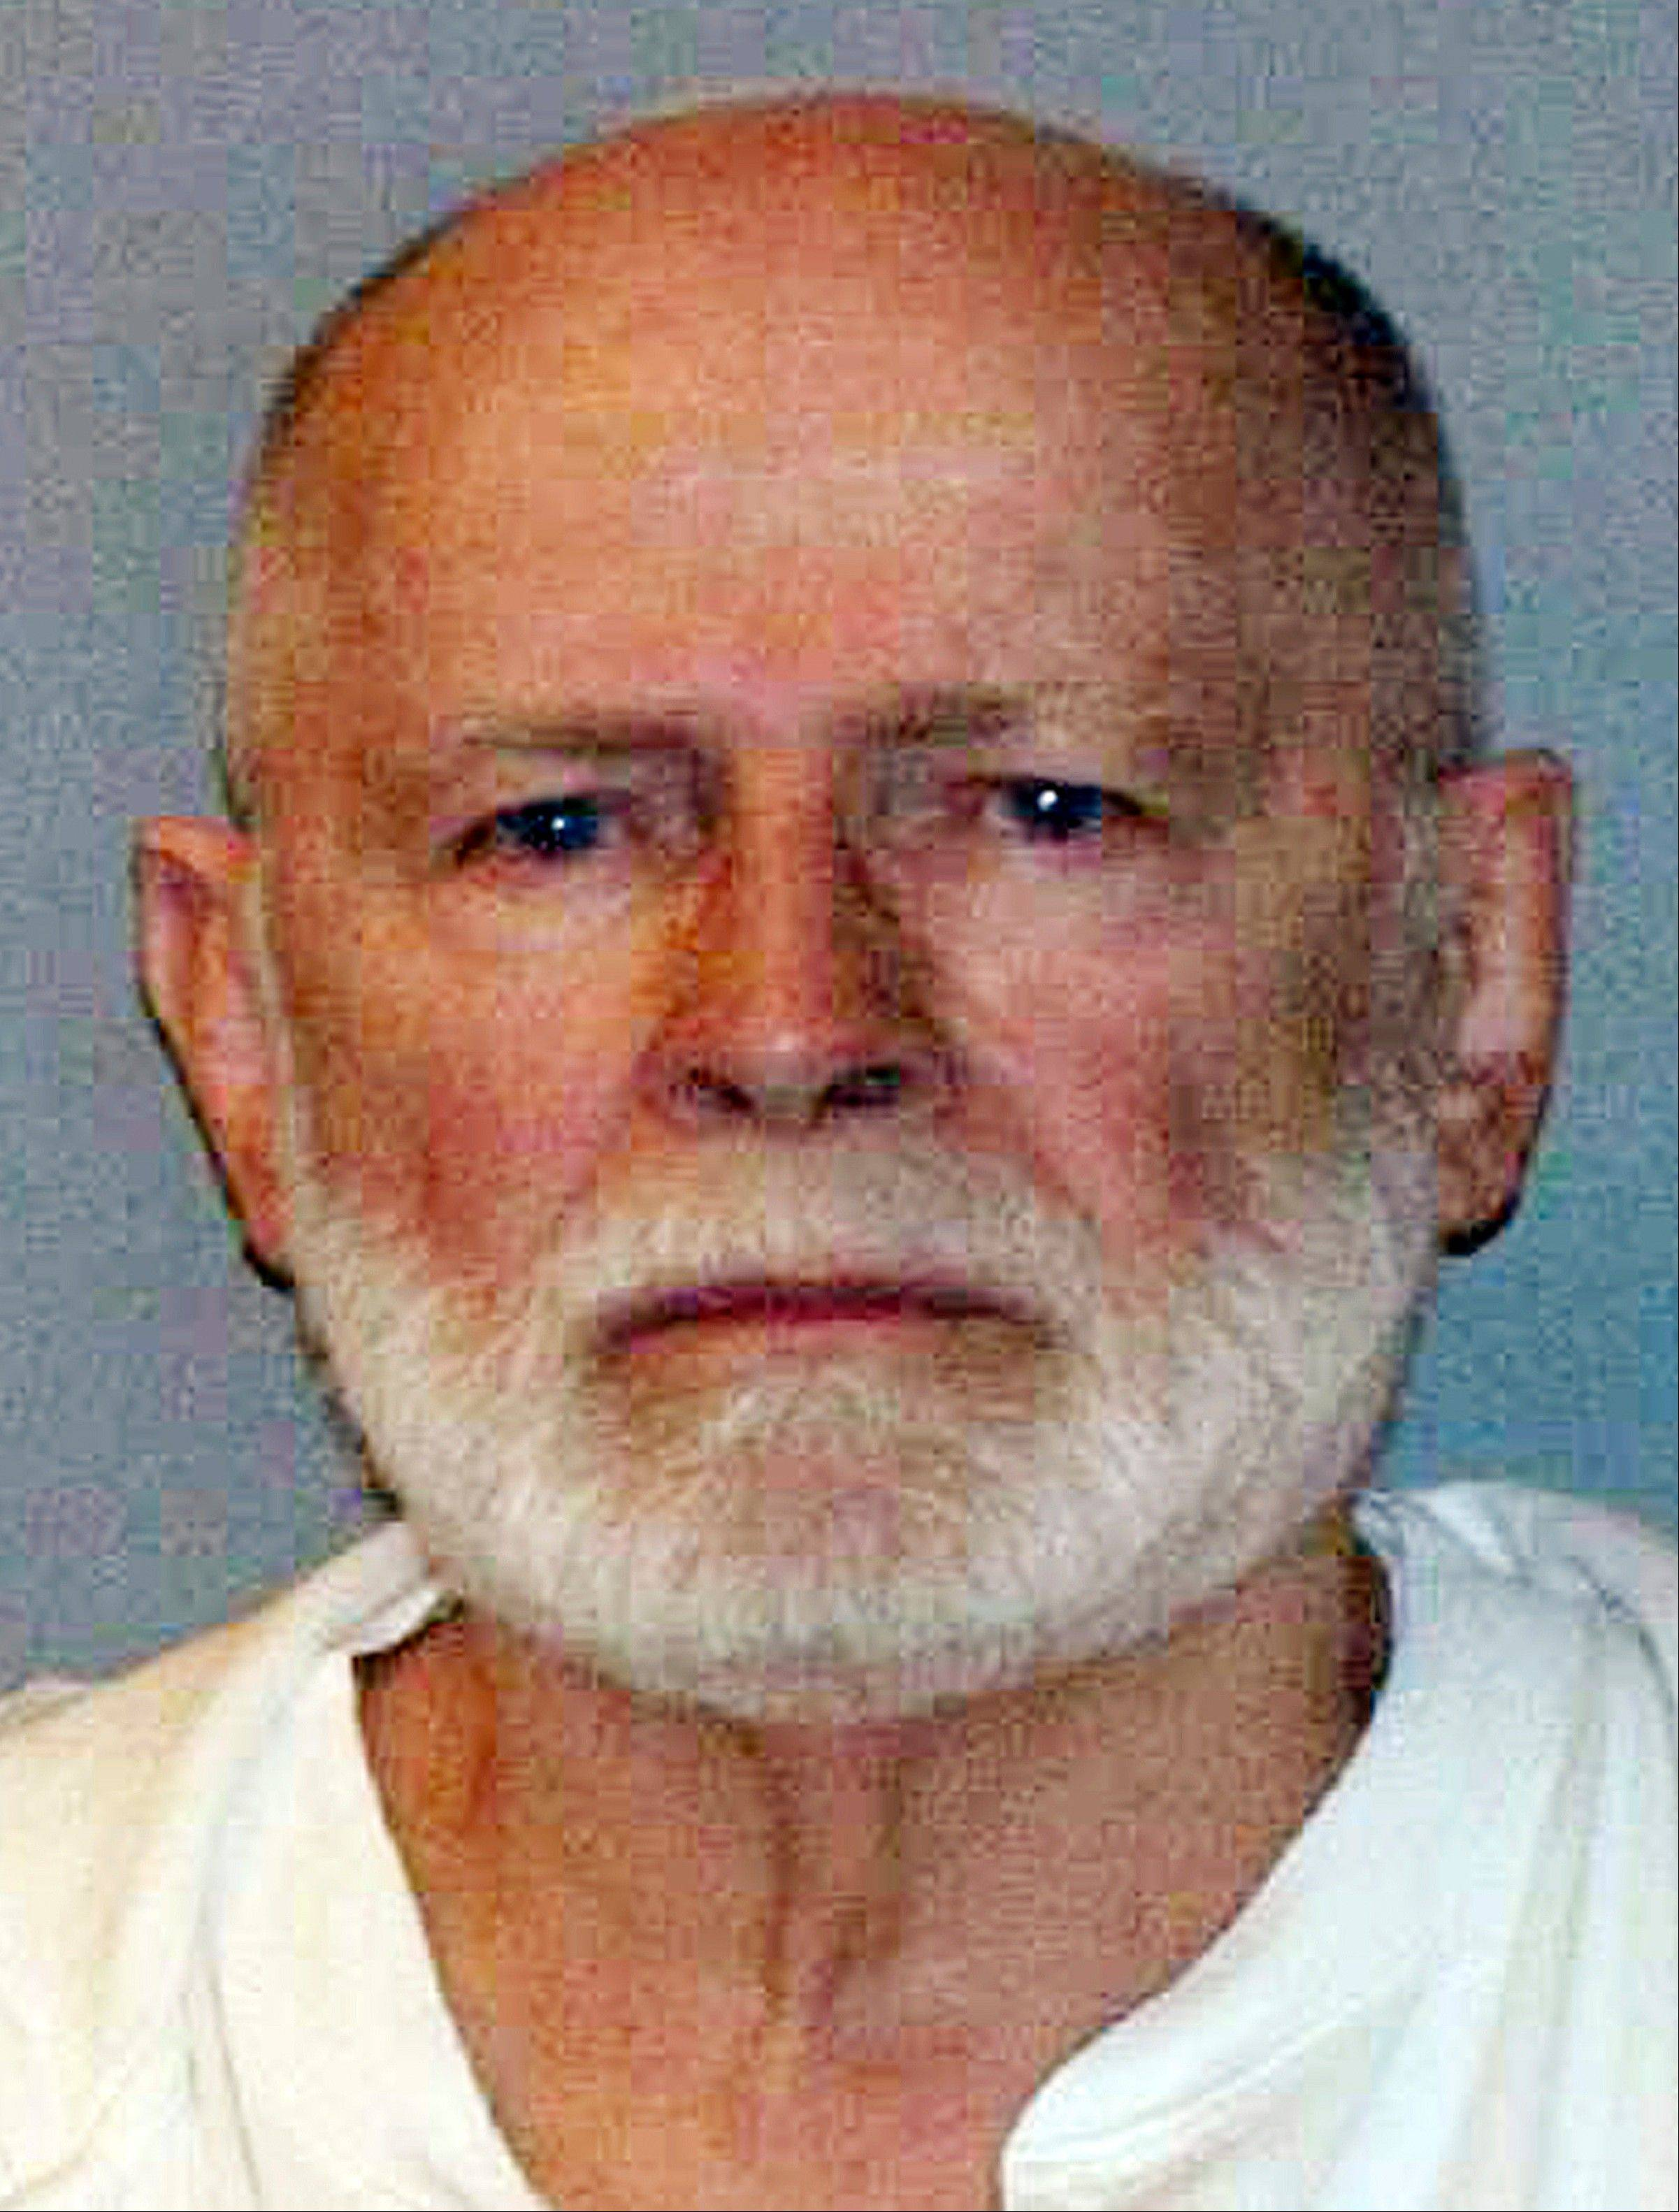 Feds: Bulger at center of murder, mayhem in Boston